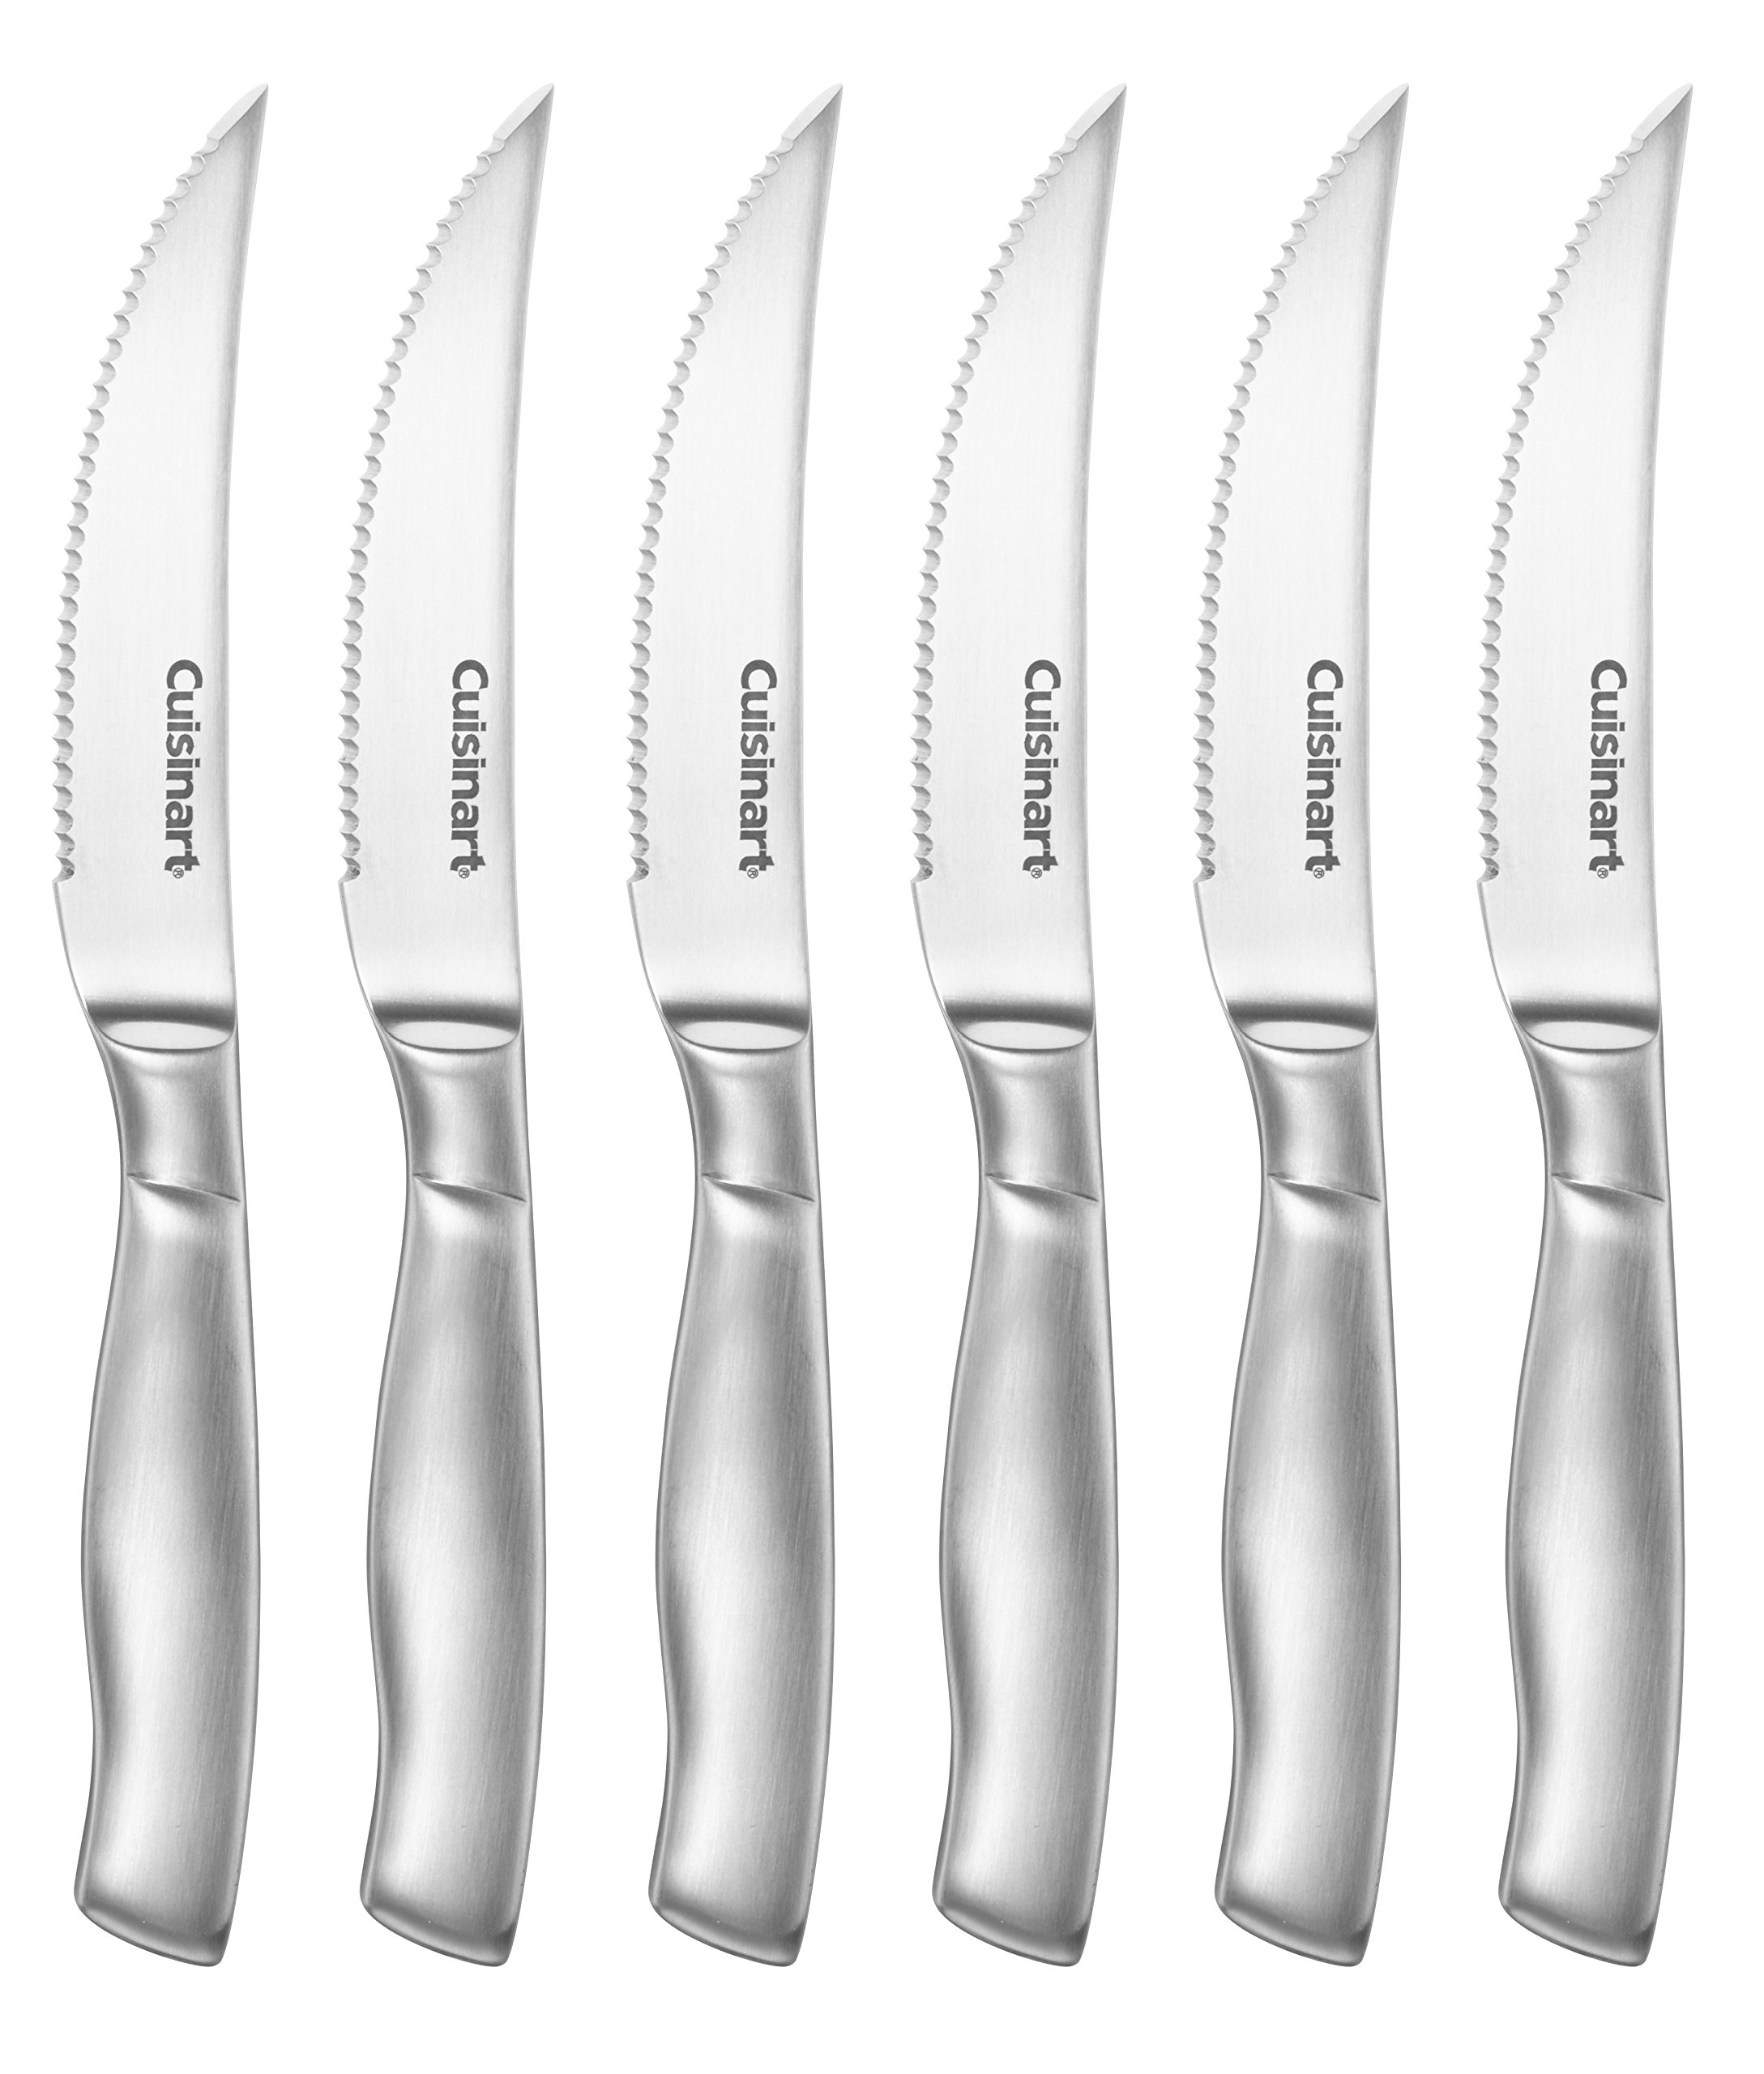 Cuisinart C77SS-15PK 15-Piece Stainless Steel Hollow Handle Block Set by Cuisinart (Image #5)